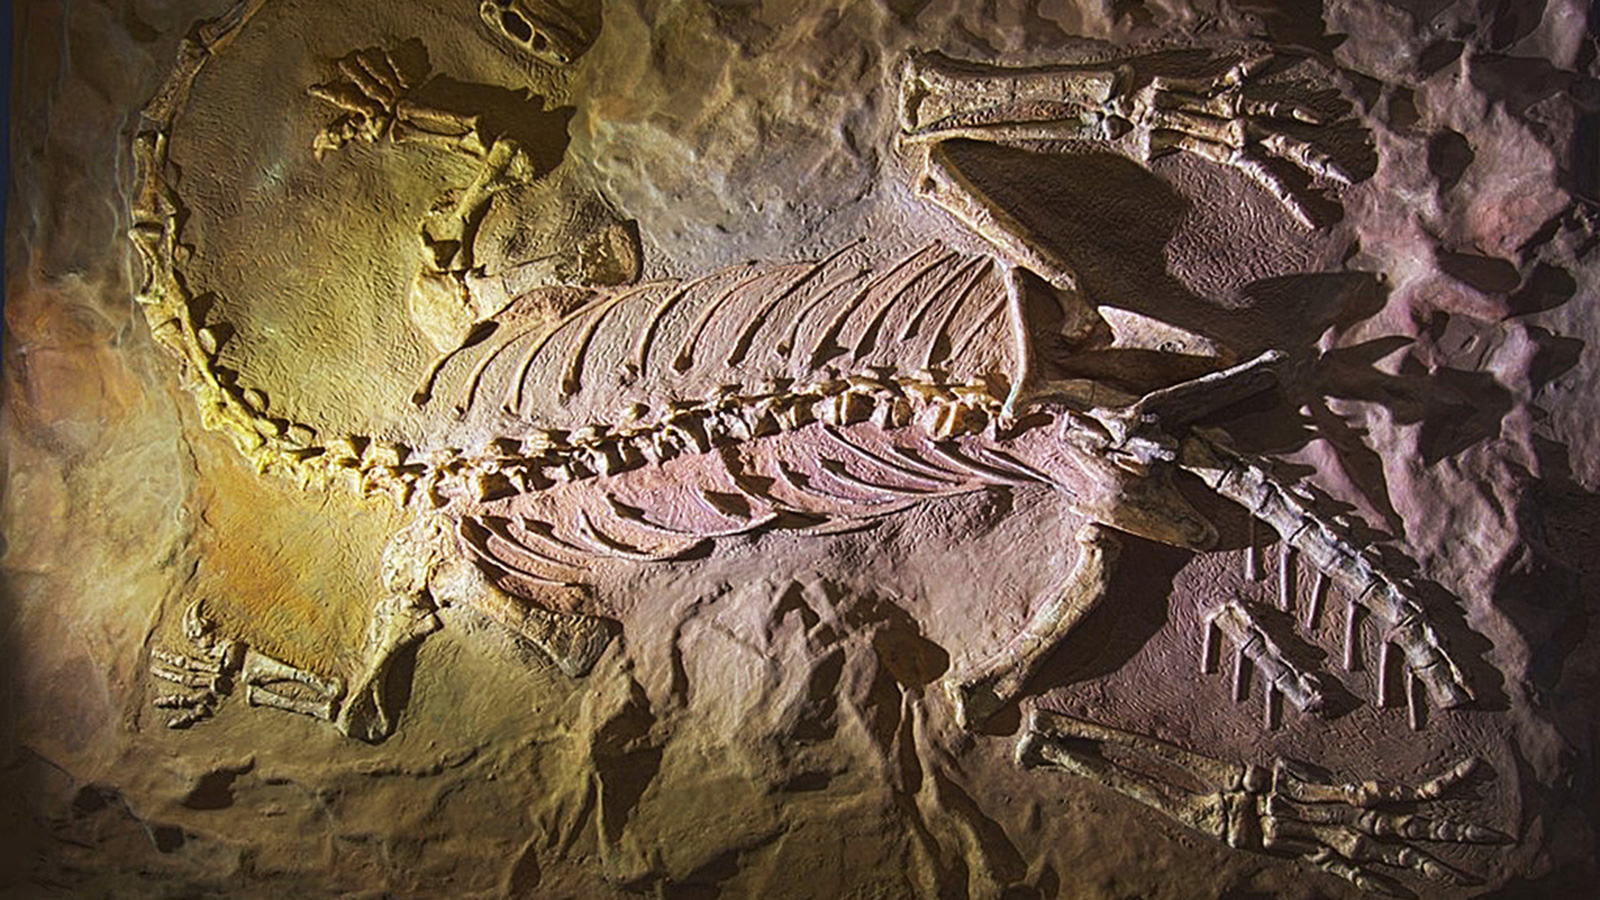 Have Dinosaur And Human Fossils Been Found Together